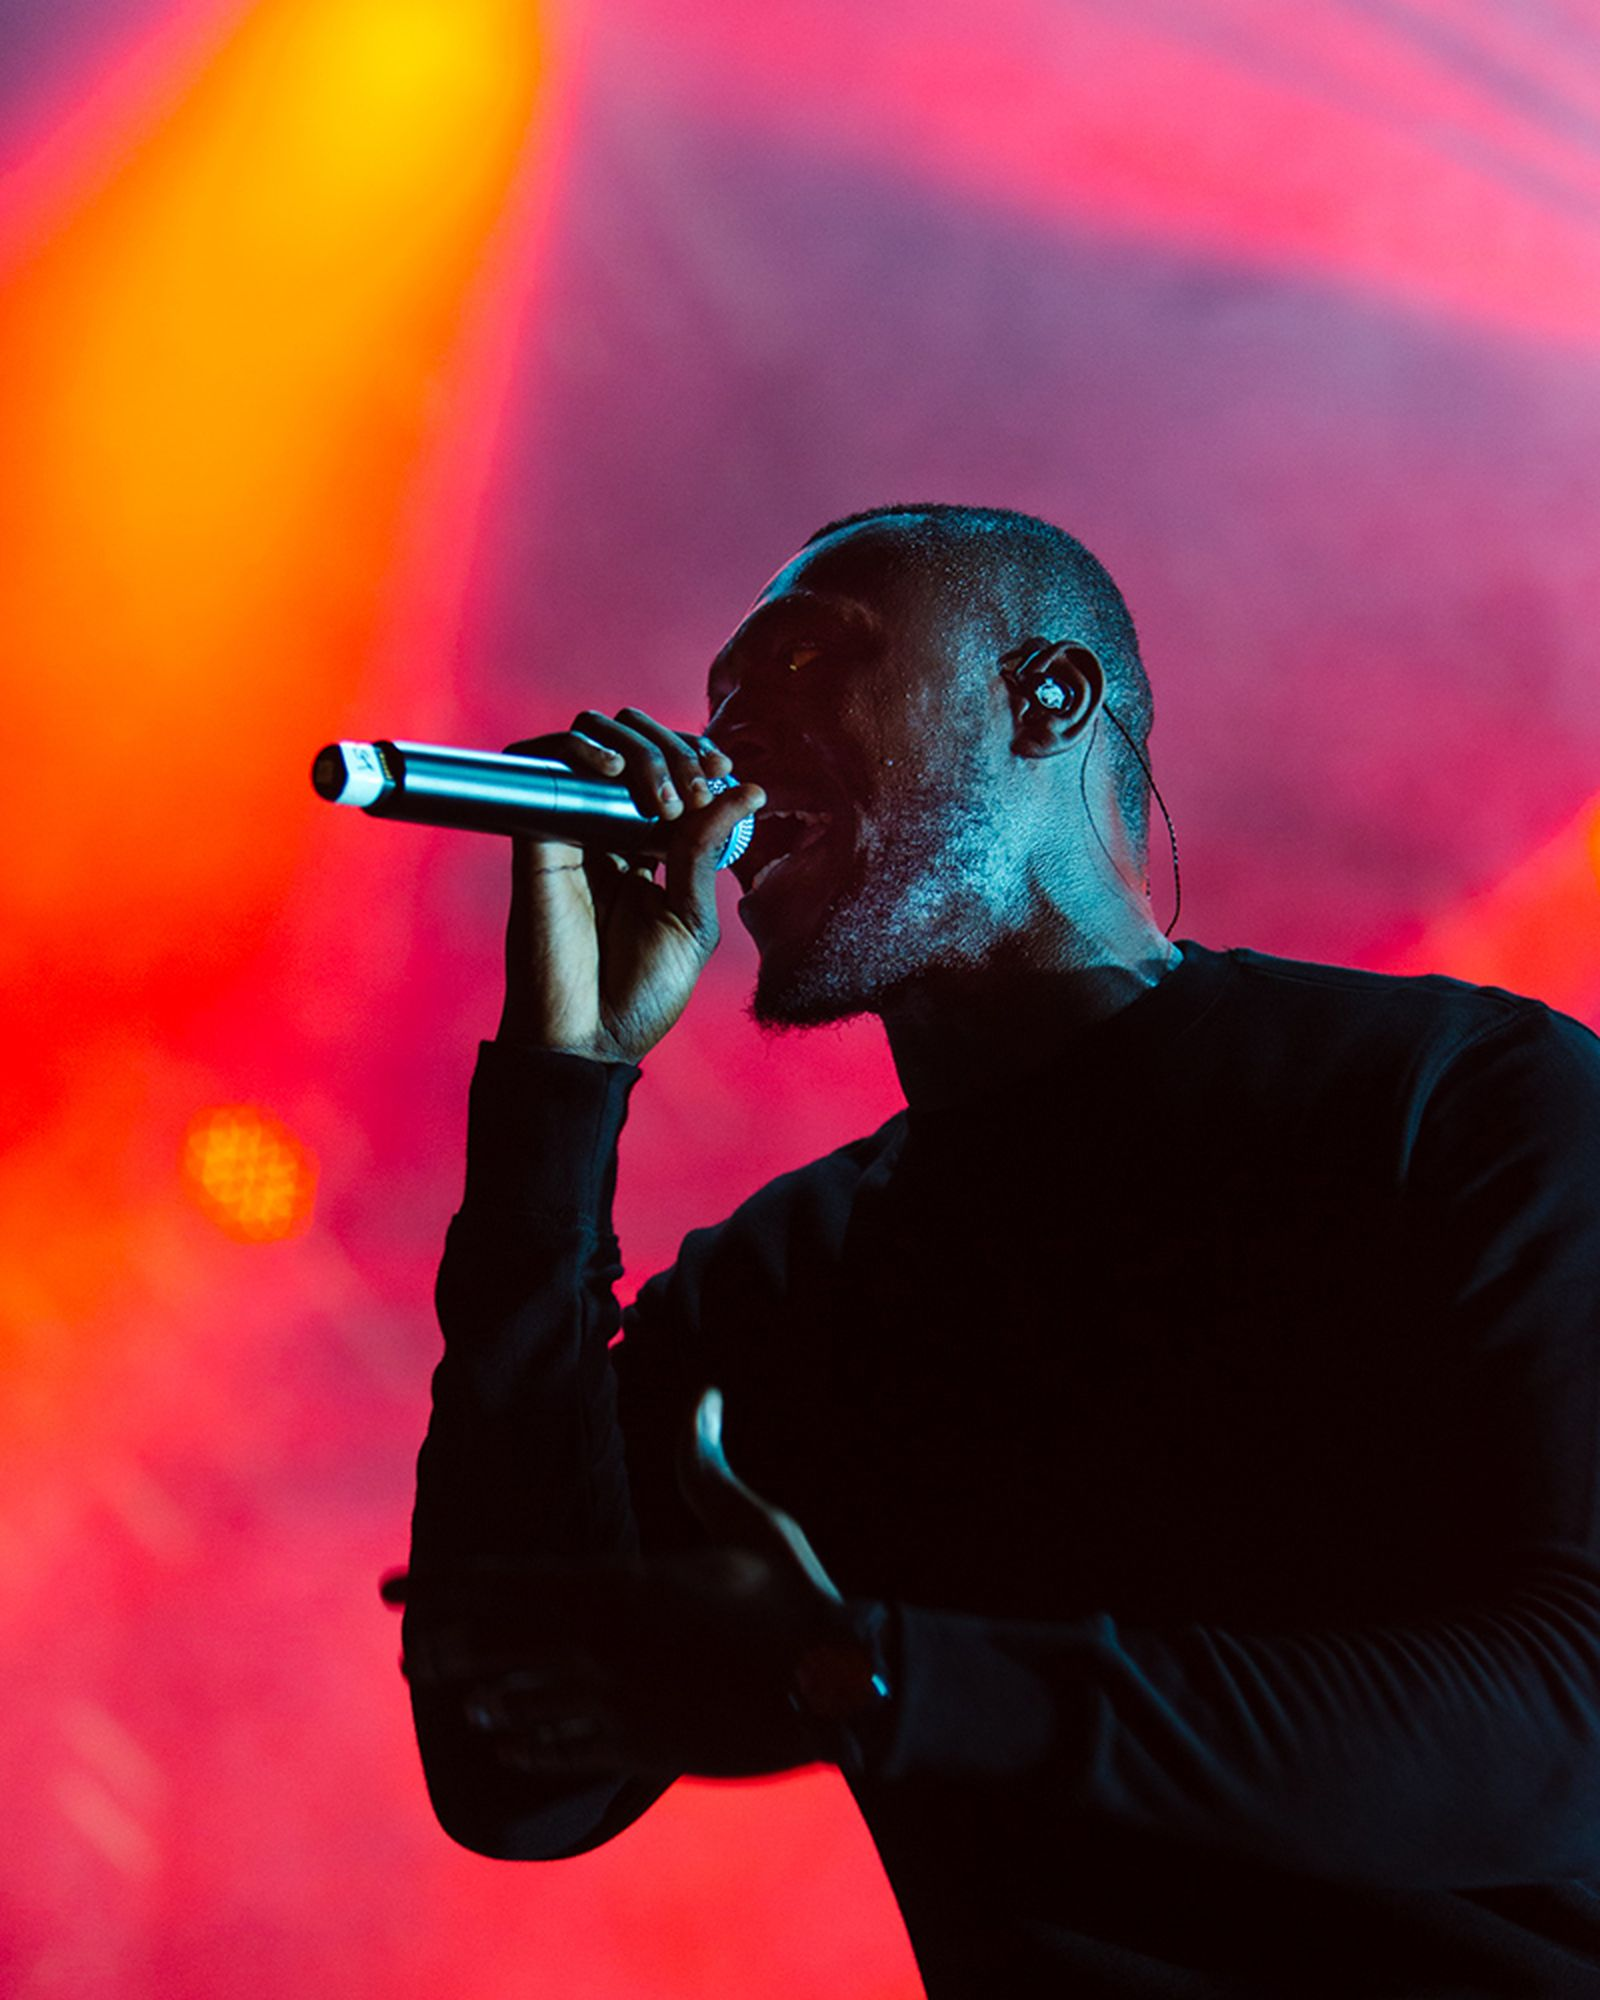 stormzy uk raps new progenitor Gang Signs & Prayer